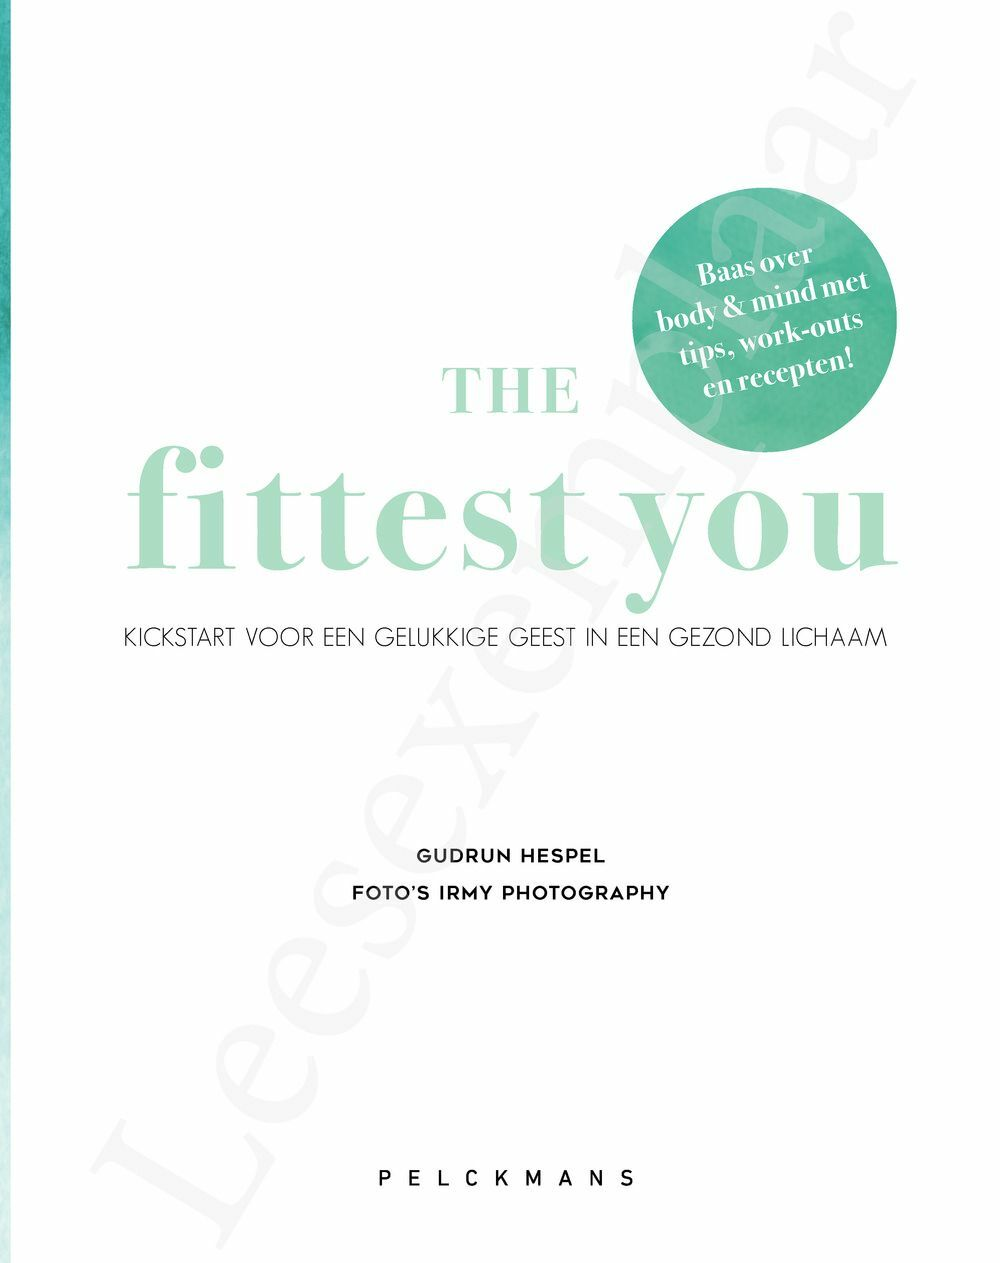 Preview: The fittest you